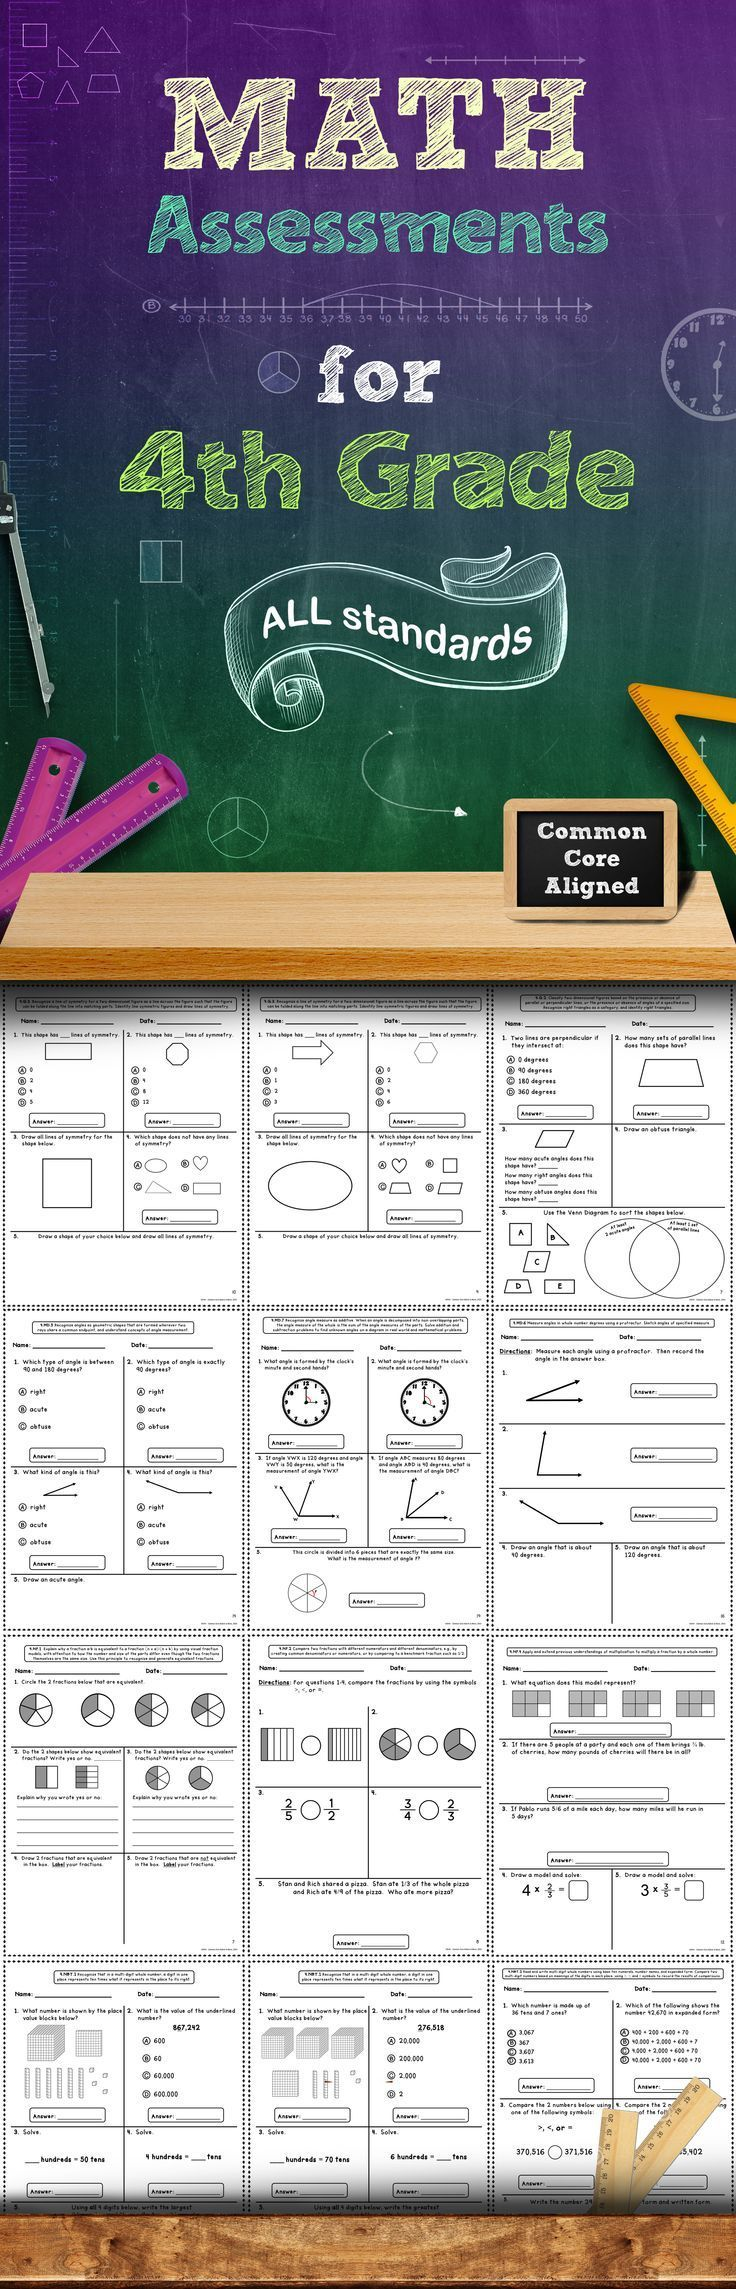 This 60+ page assessment bundle contains quick math